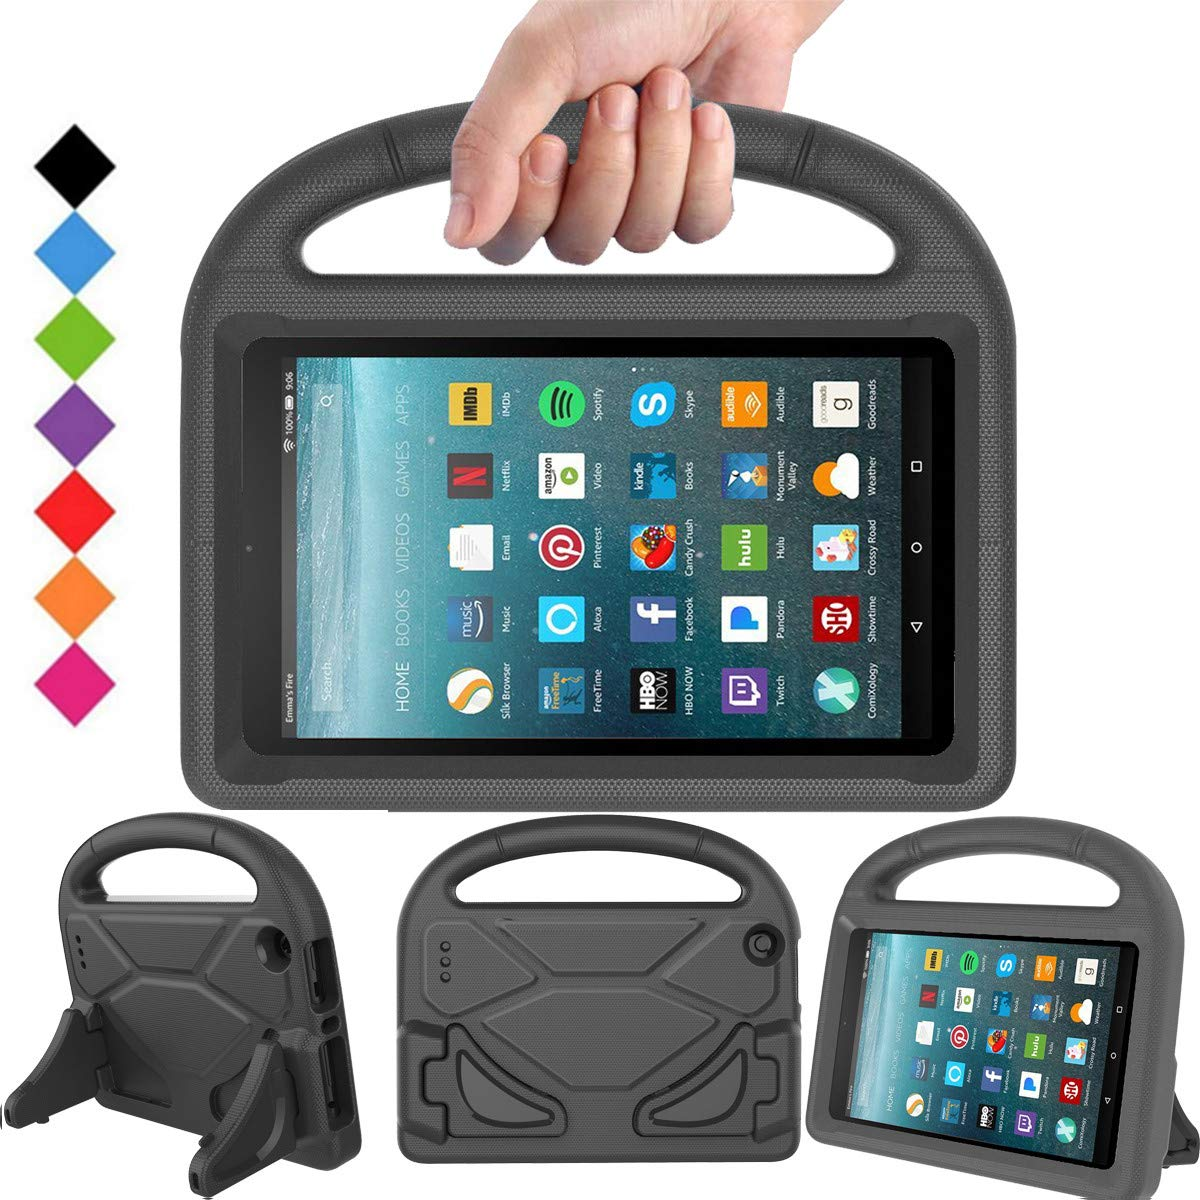 BMOUO Case for Fire 7 2017 - Light Weight Shock Proof Handle Kid –Proof Cover Kids Case for Fire 7 Tablet, Black